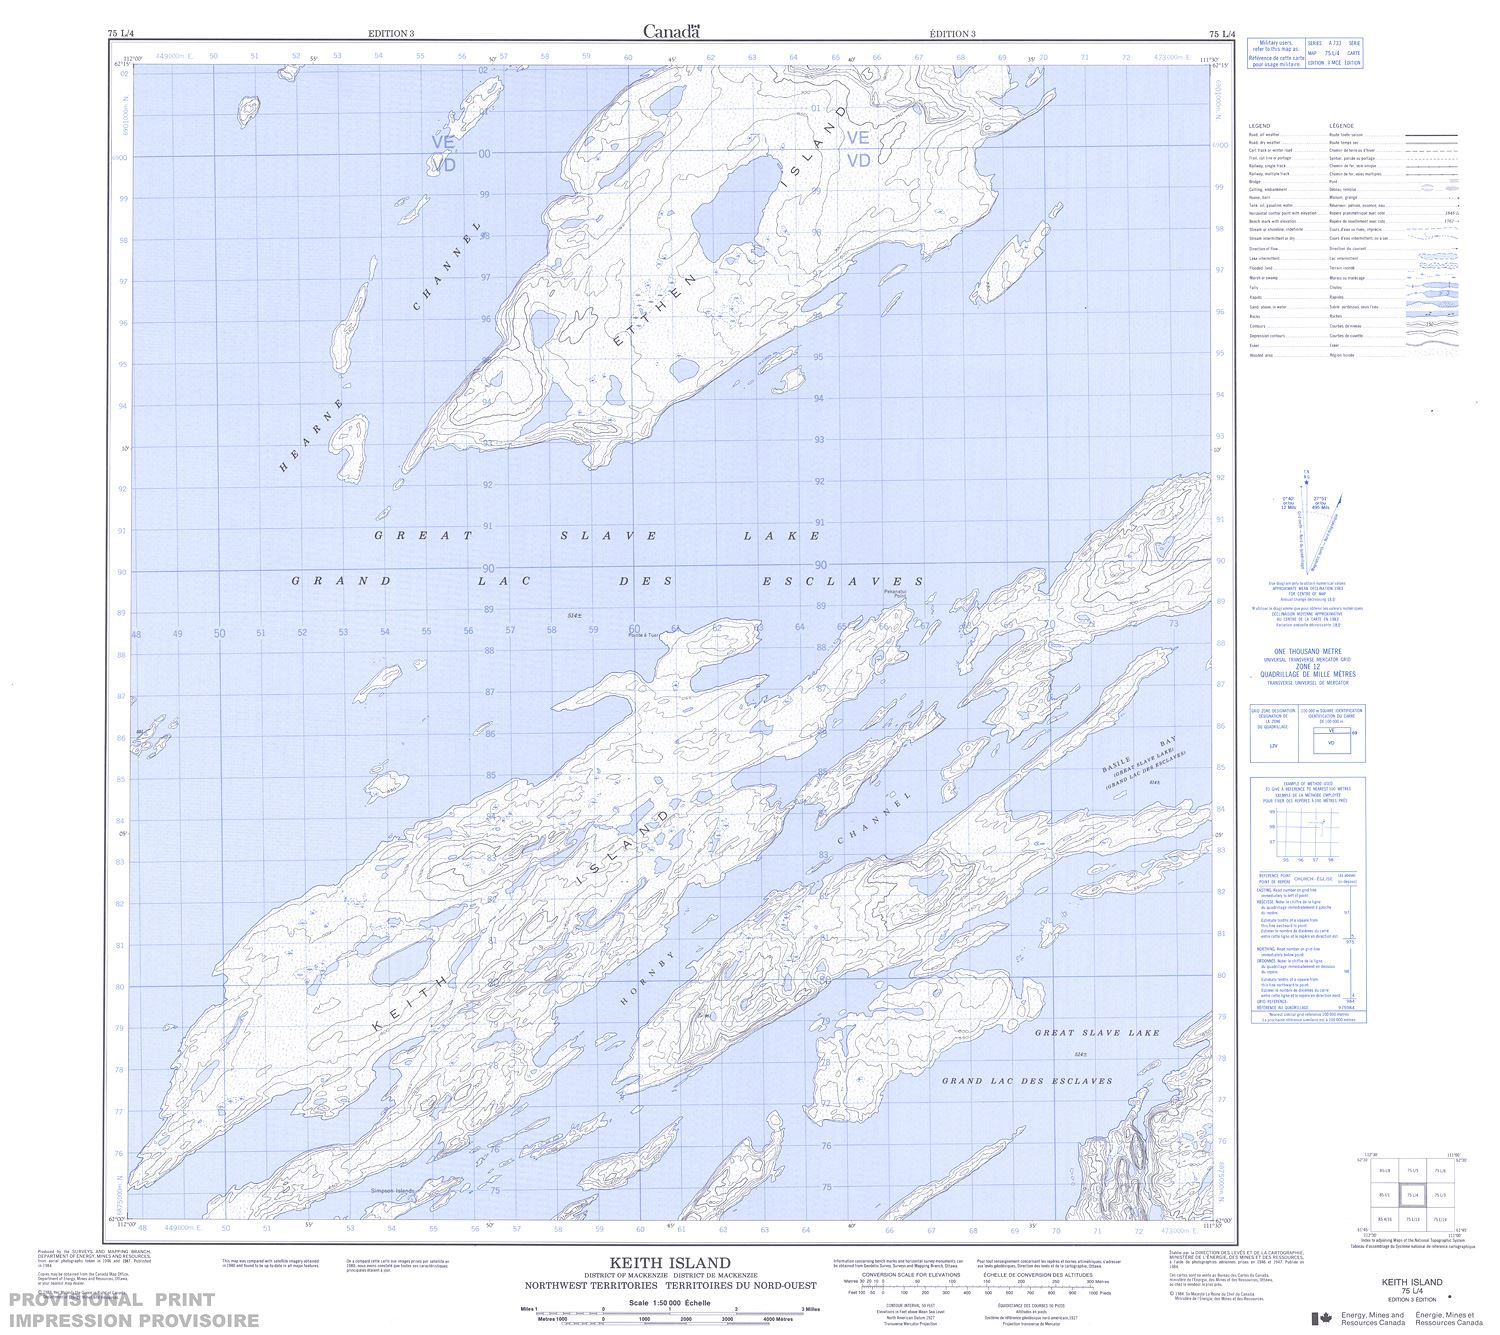 075l04 Keith Island Topographic Map